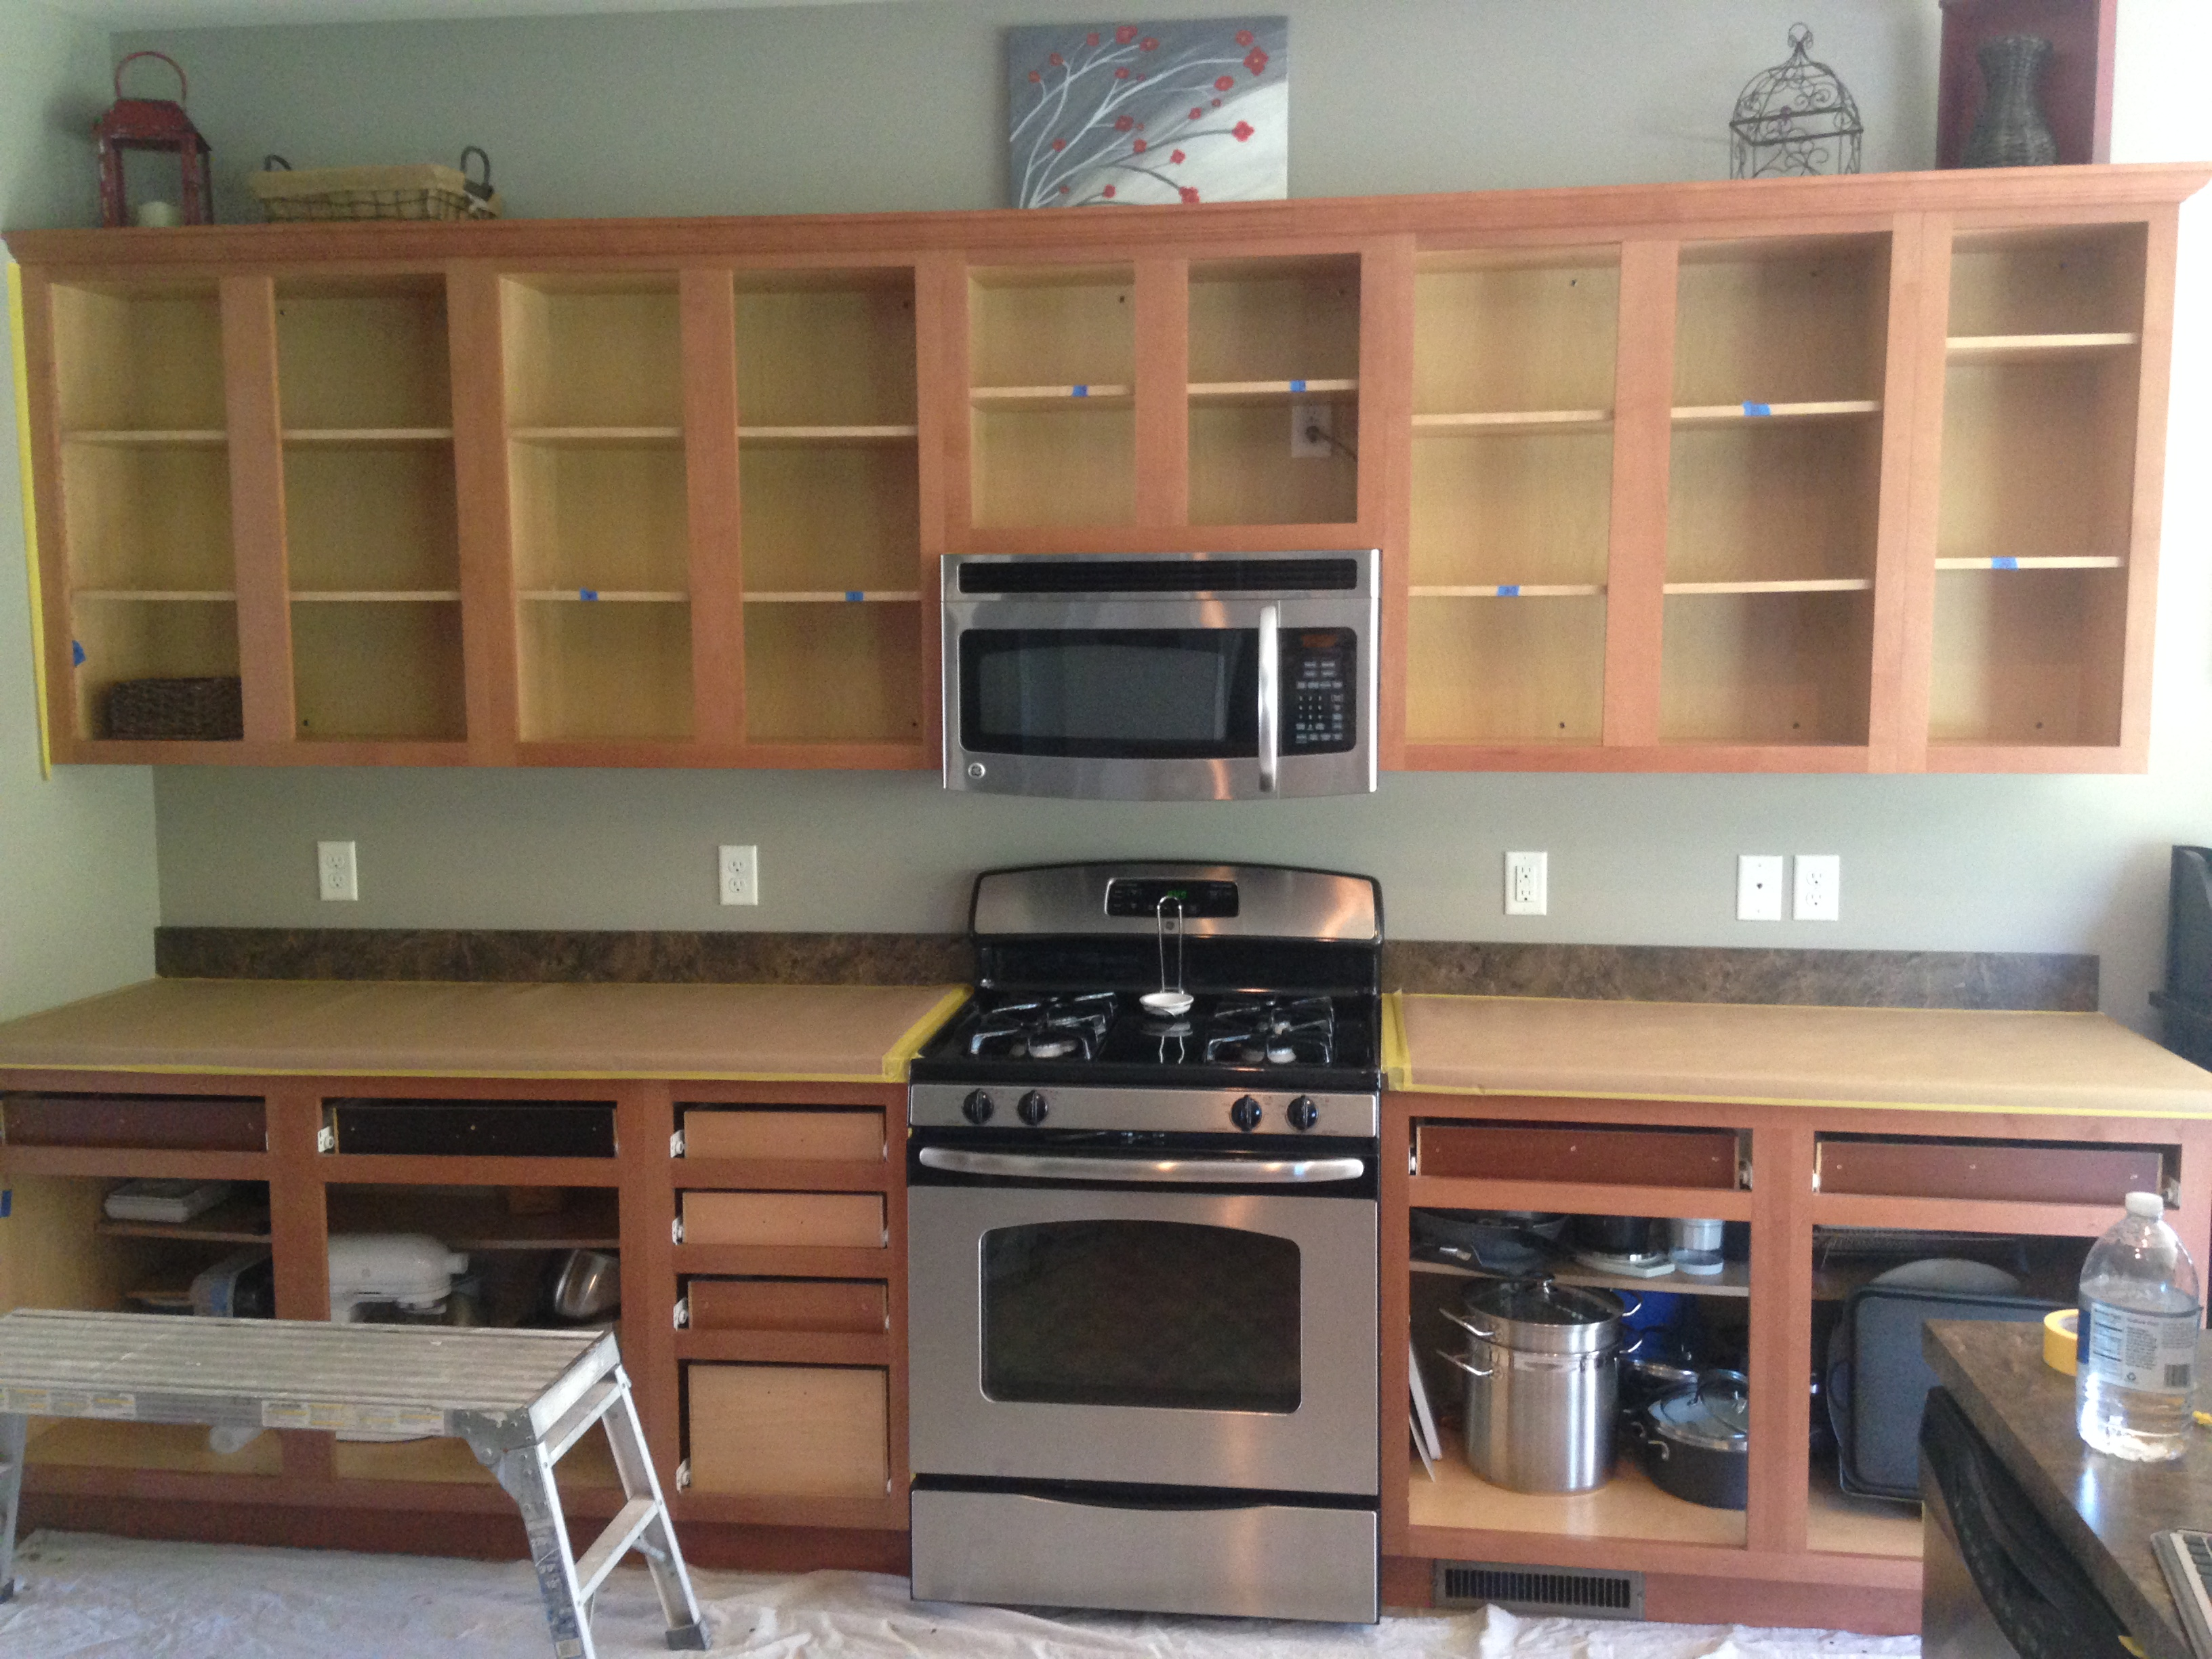 House Painting Ideas For The Kitchen - How to Paint ...